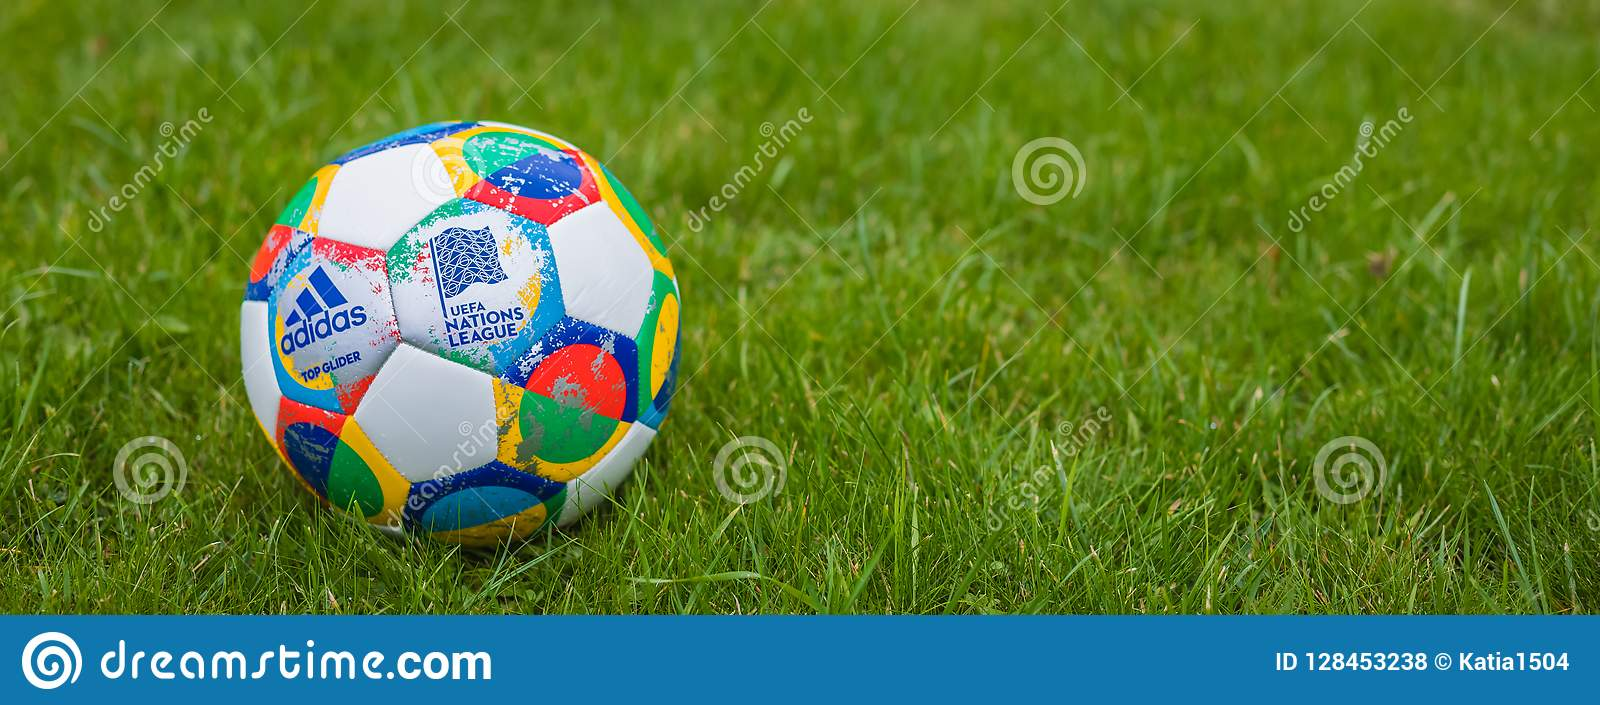 Moscow Russia October 7 2018 Adidas Uefa Nations League Official Match Ball Glider On The Grass Banner Editorial Stock Photo Image Of Glider Colorful 128453238